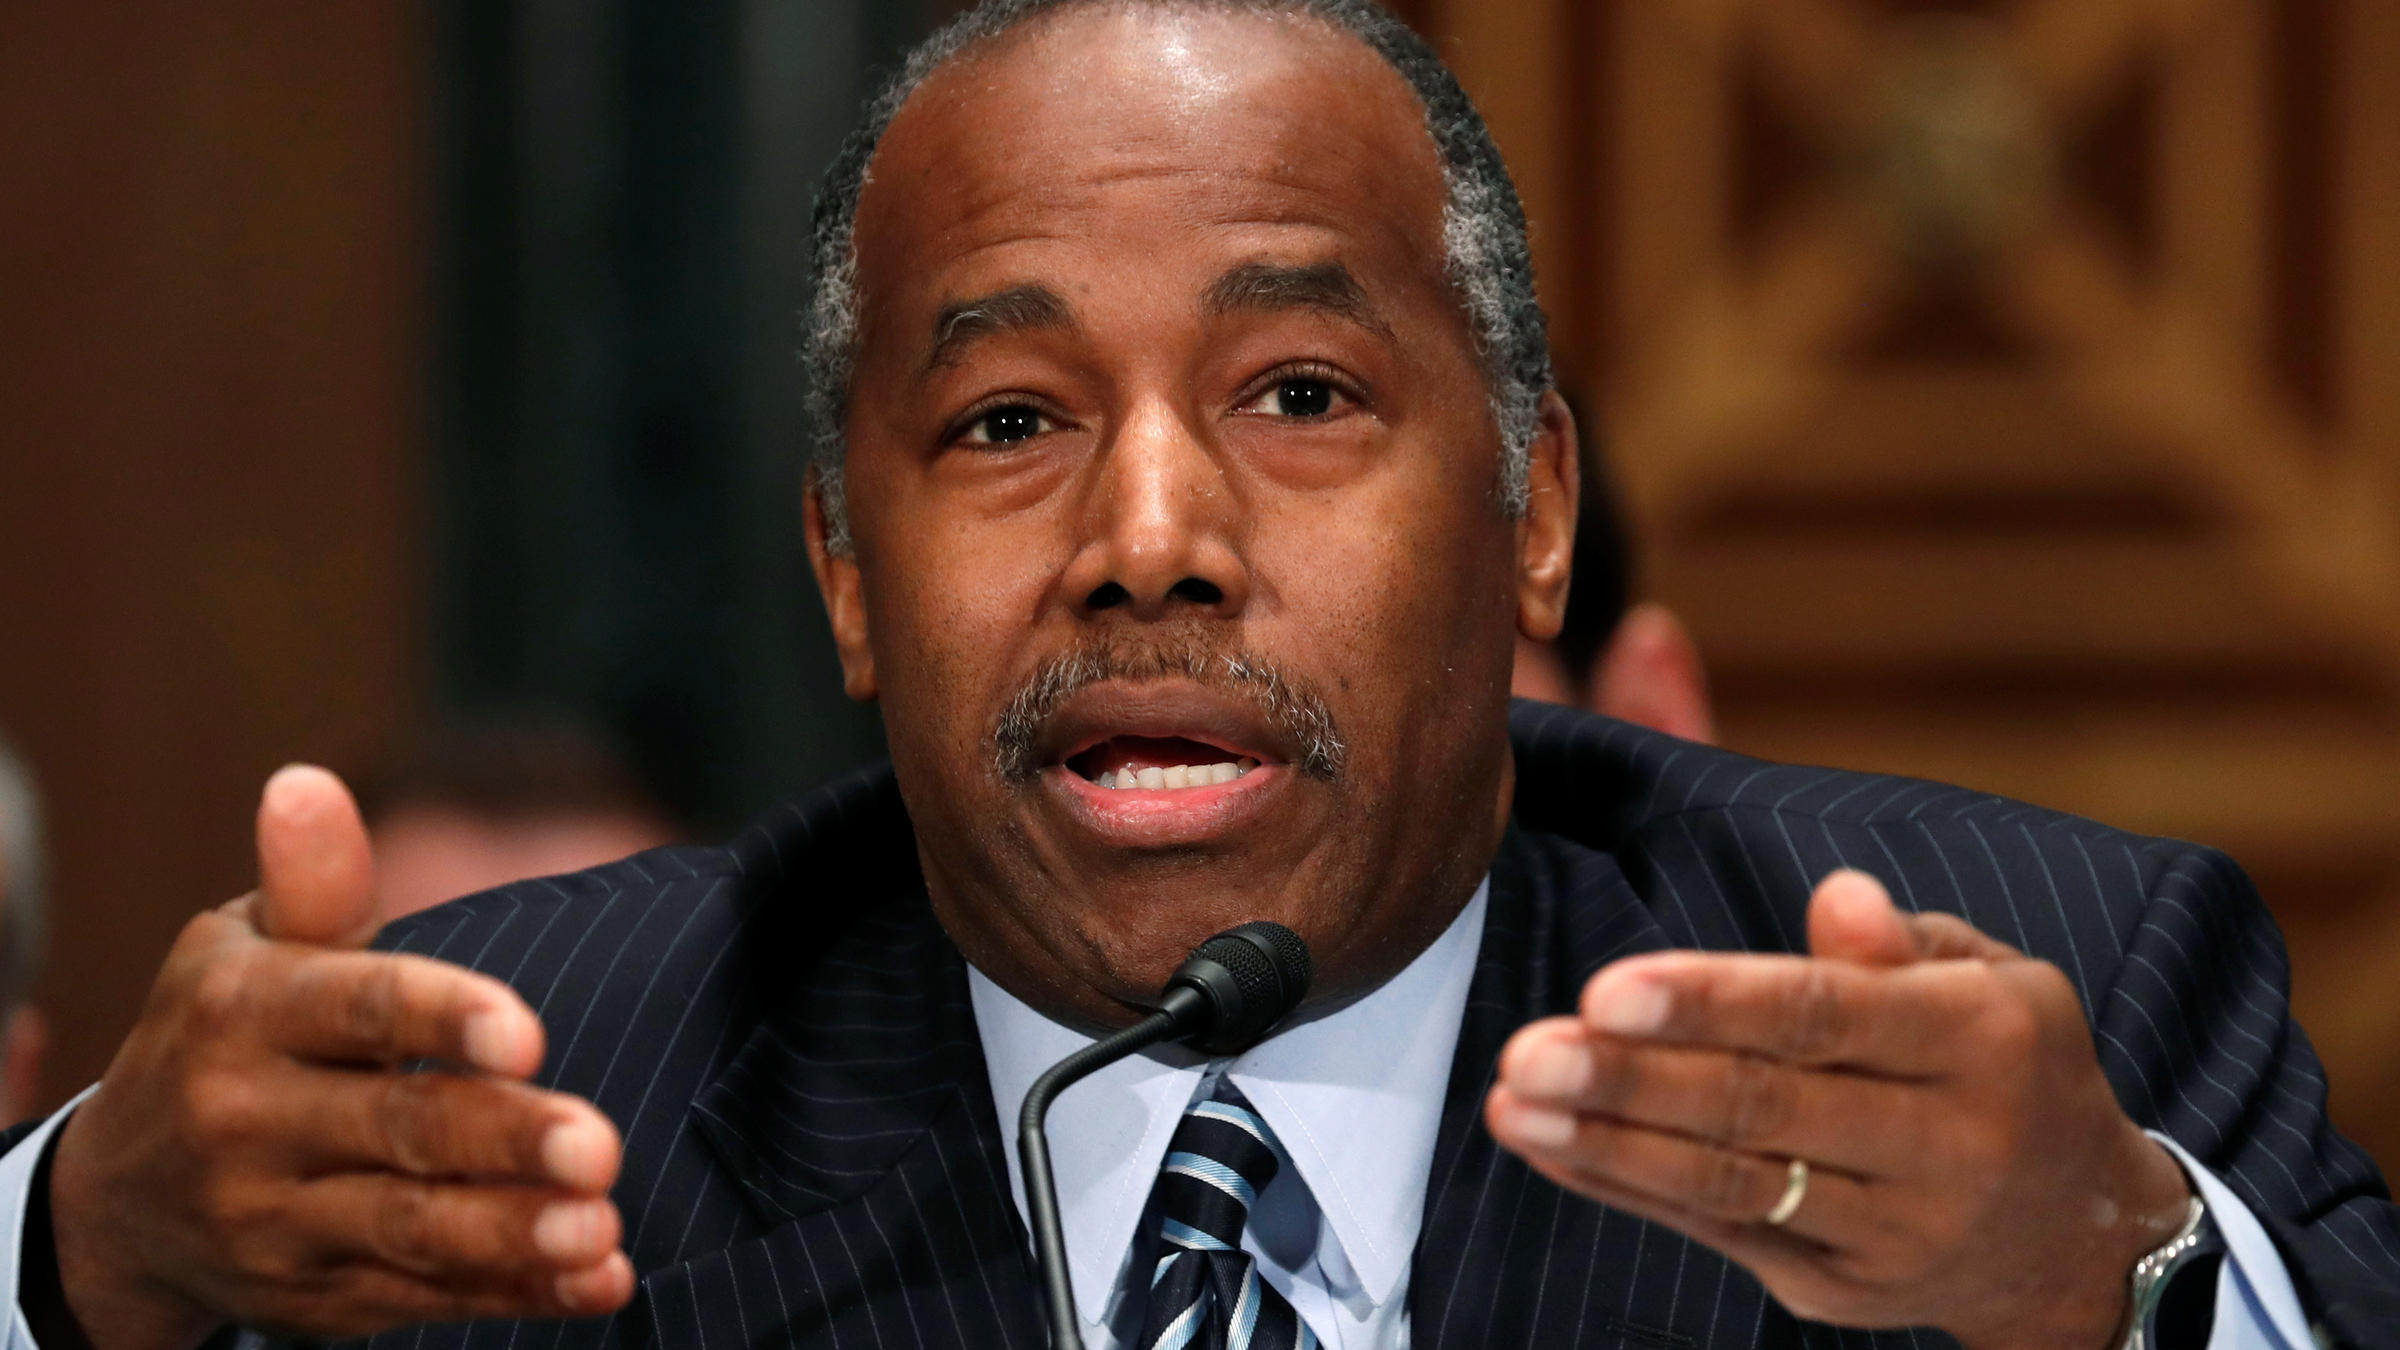 Group Plans To Sue HUD, Ben Carson Over Rule Postponement